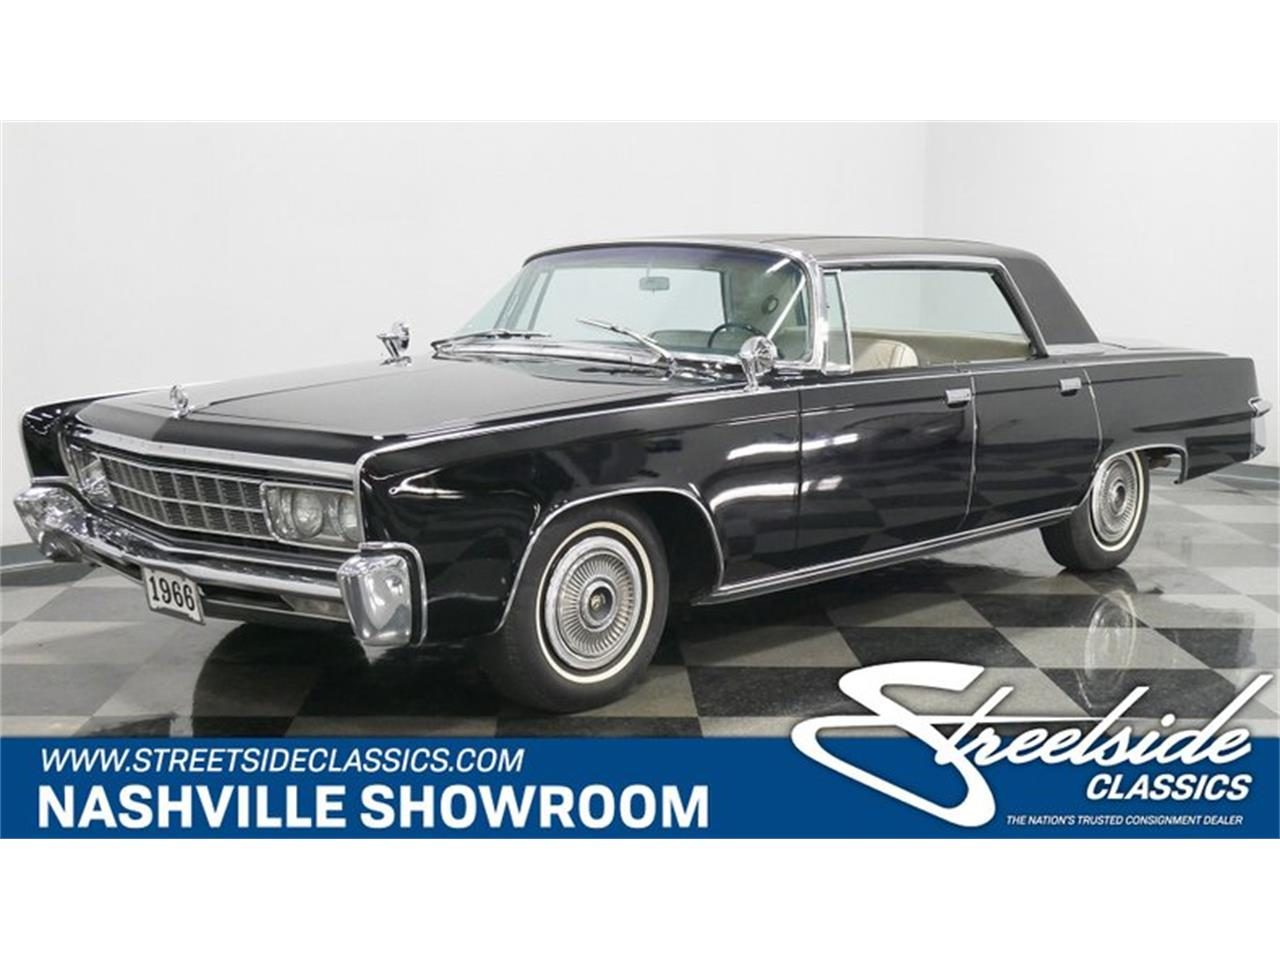 1966 Chrysler Imperial for sale in Lavergne, TN